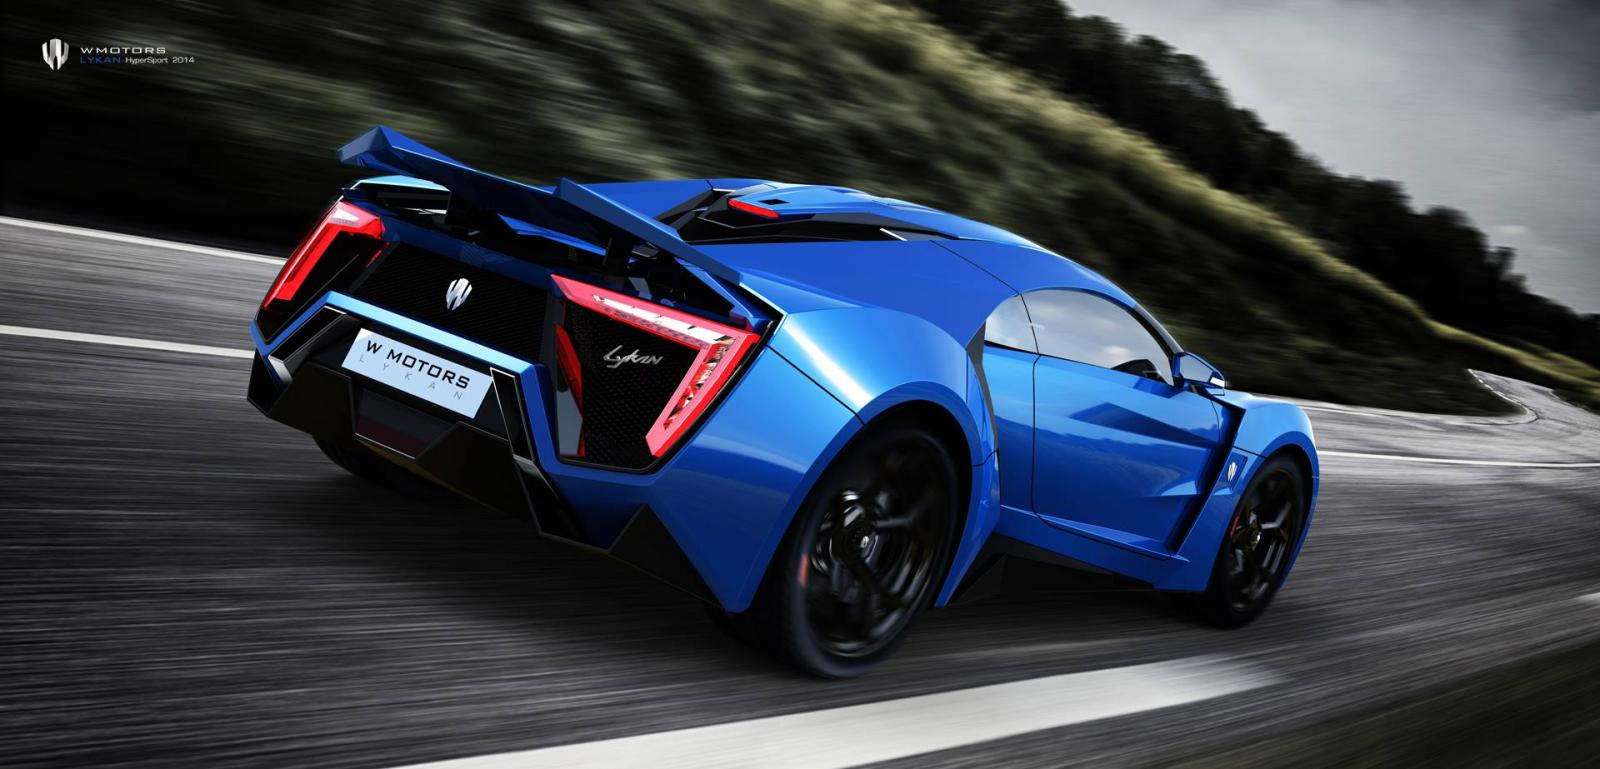 Chrysler Lamborghini >> W Motors Cars - News: $3.4m Lykan Hypersport Arab Supercar